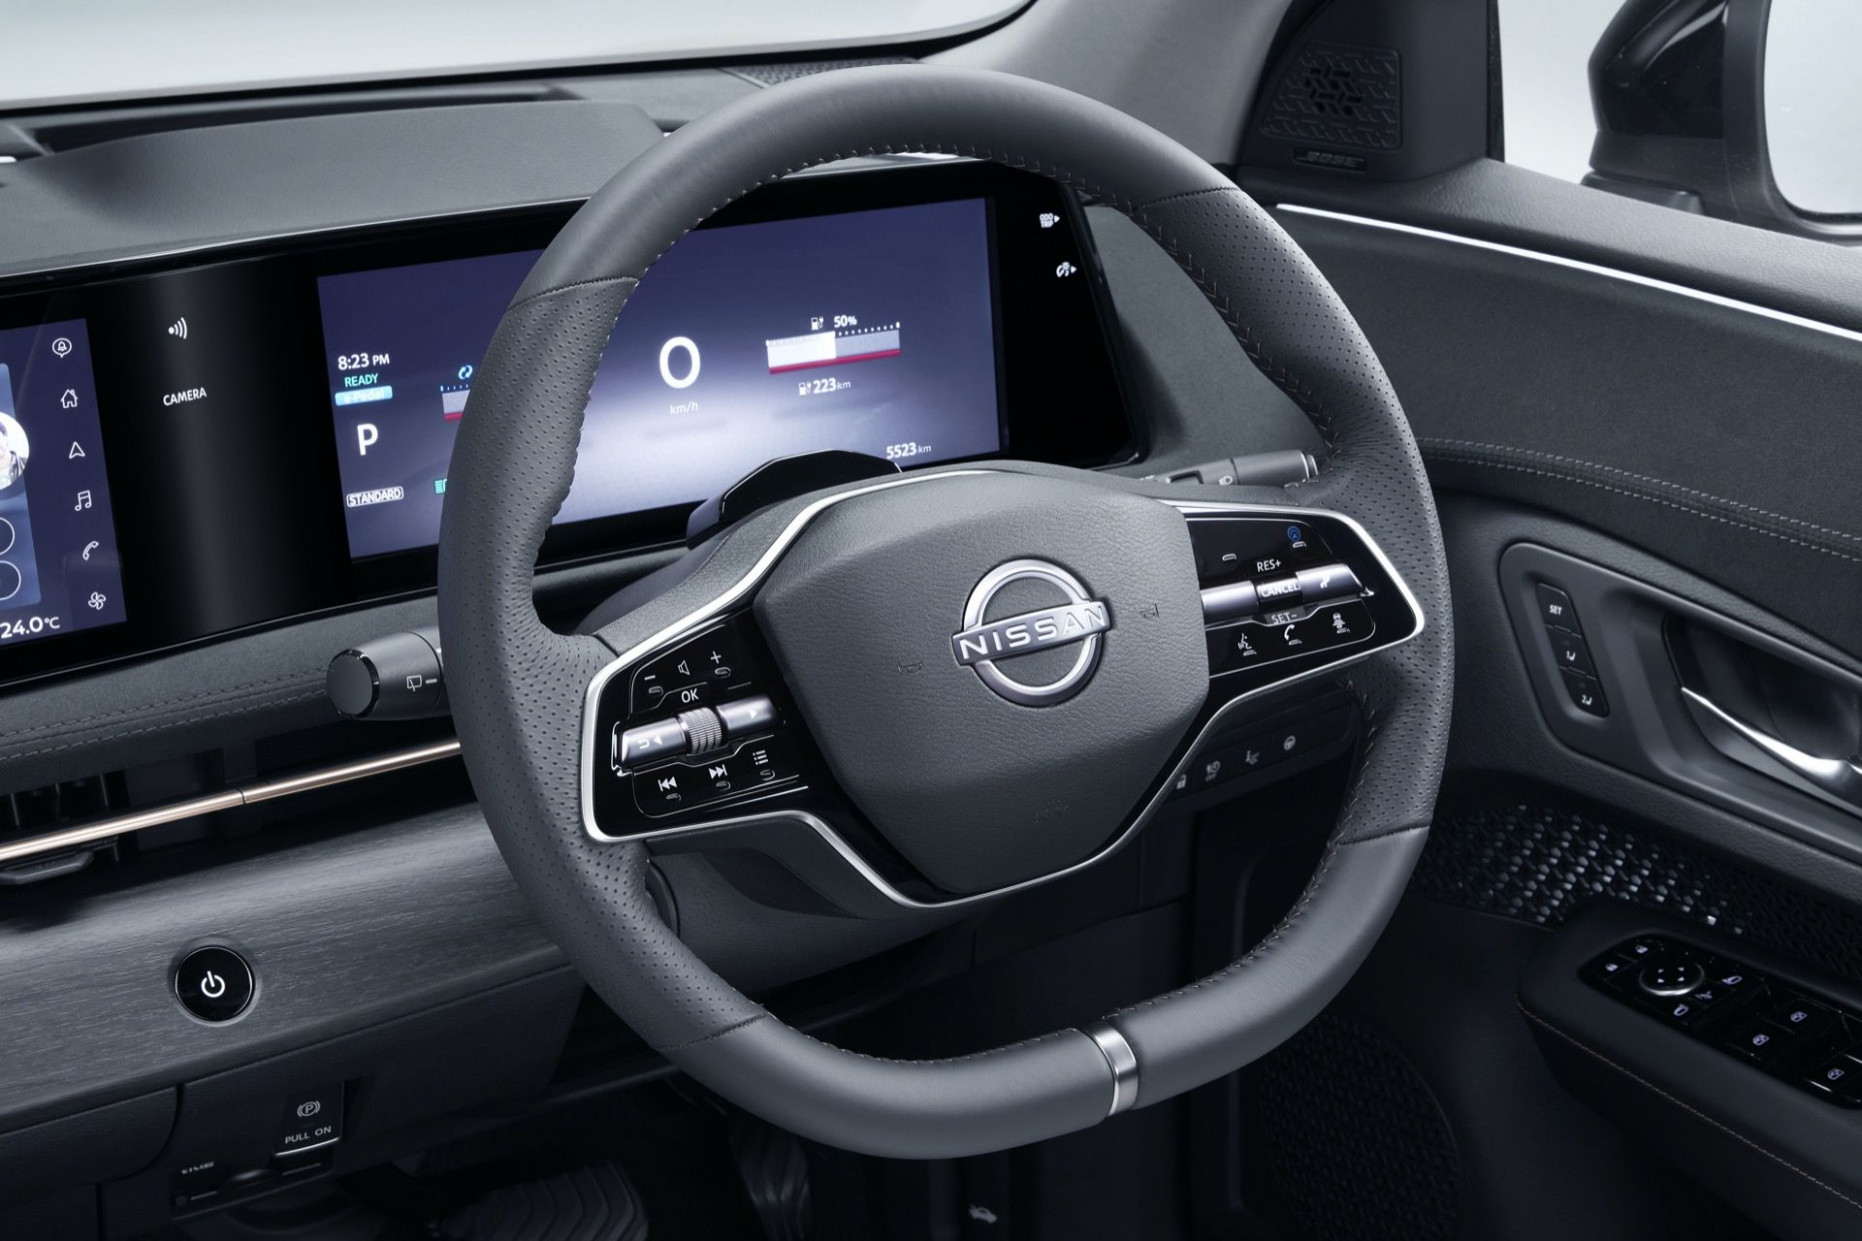 Performance and New Engine Nissan Concept 2022 Interior